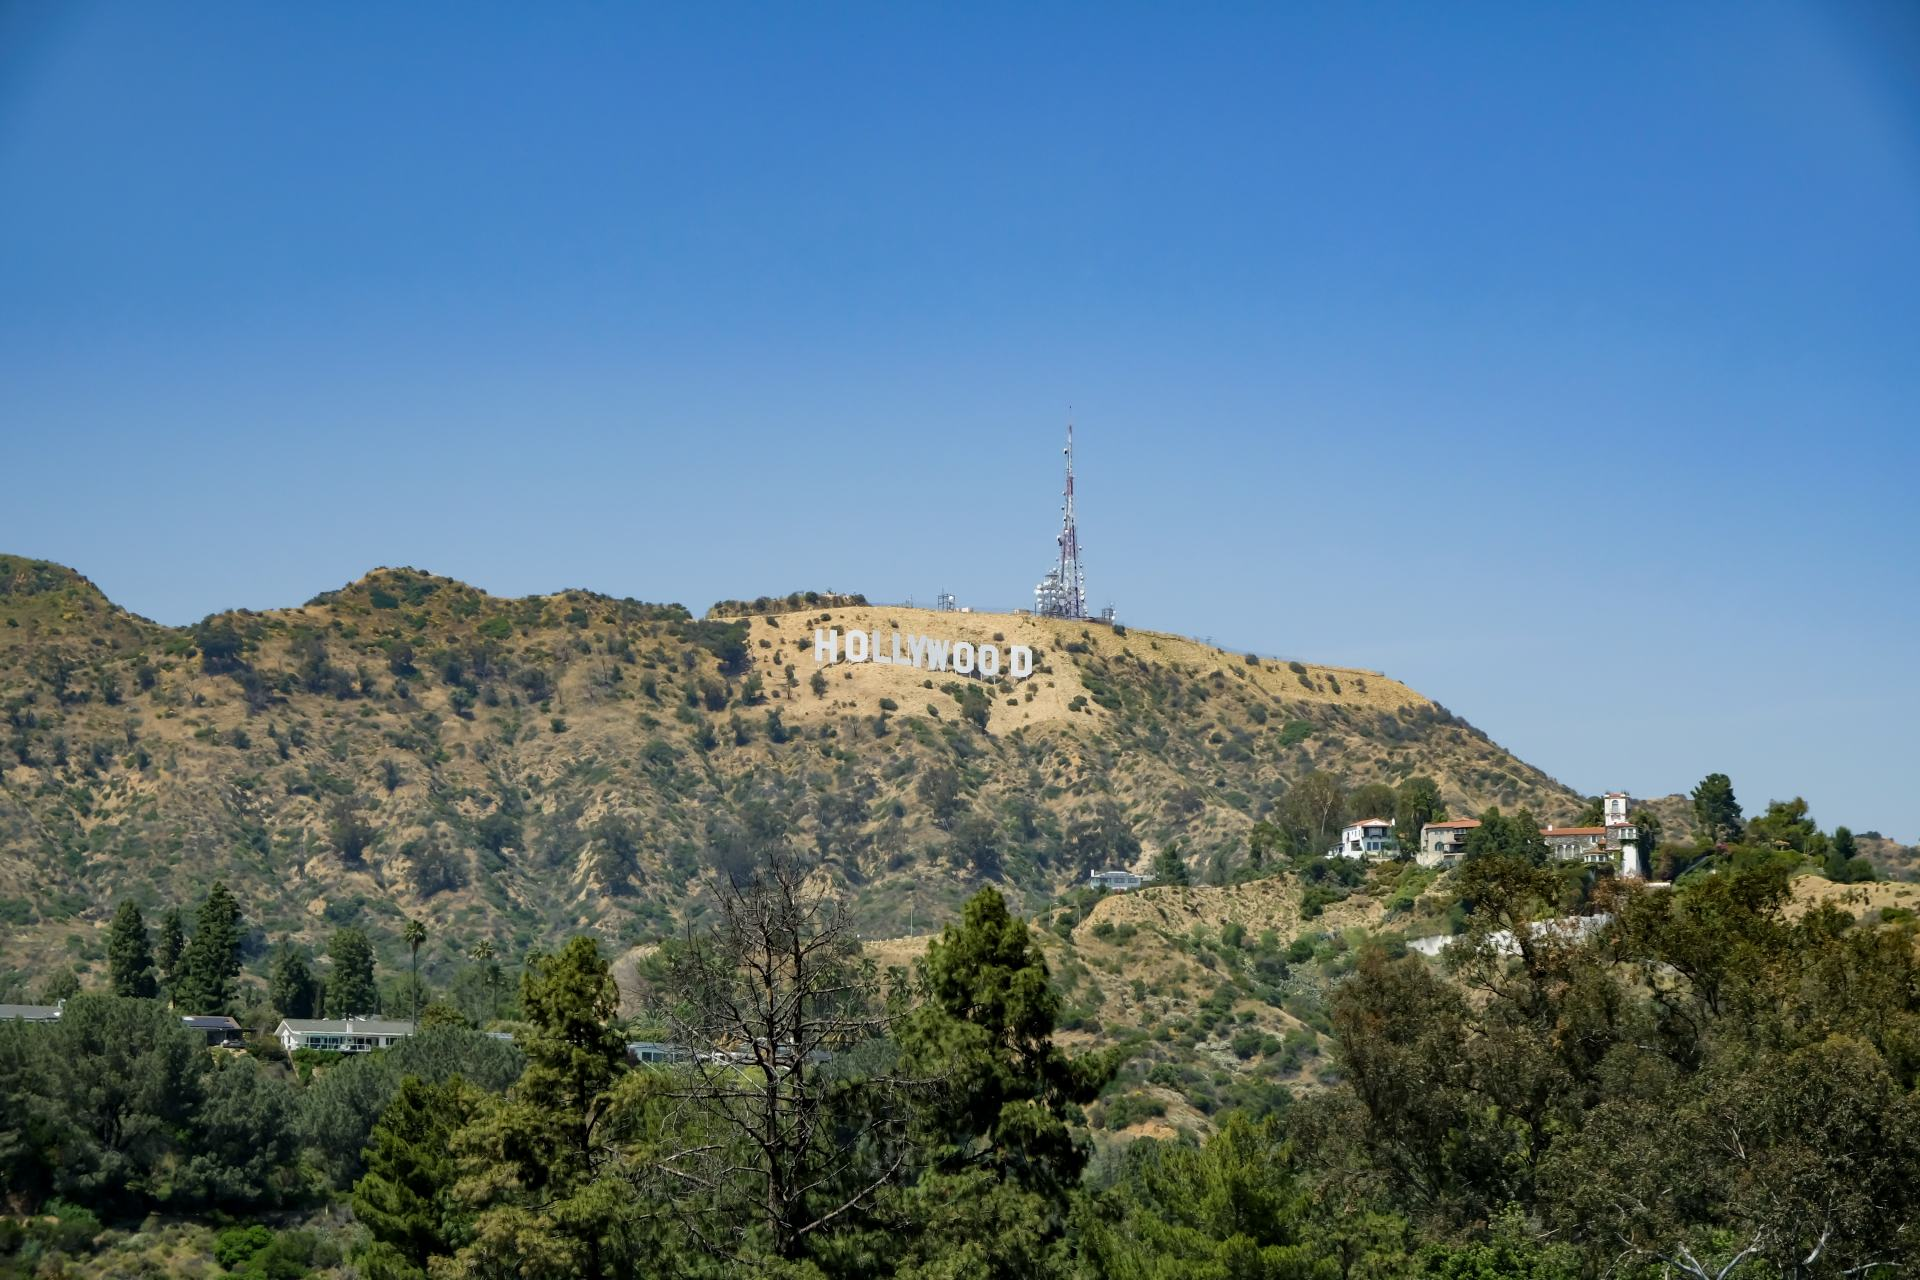 the hollywood sign from lake hollywood park